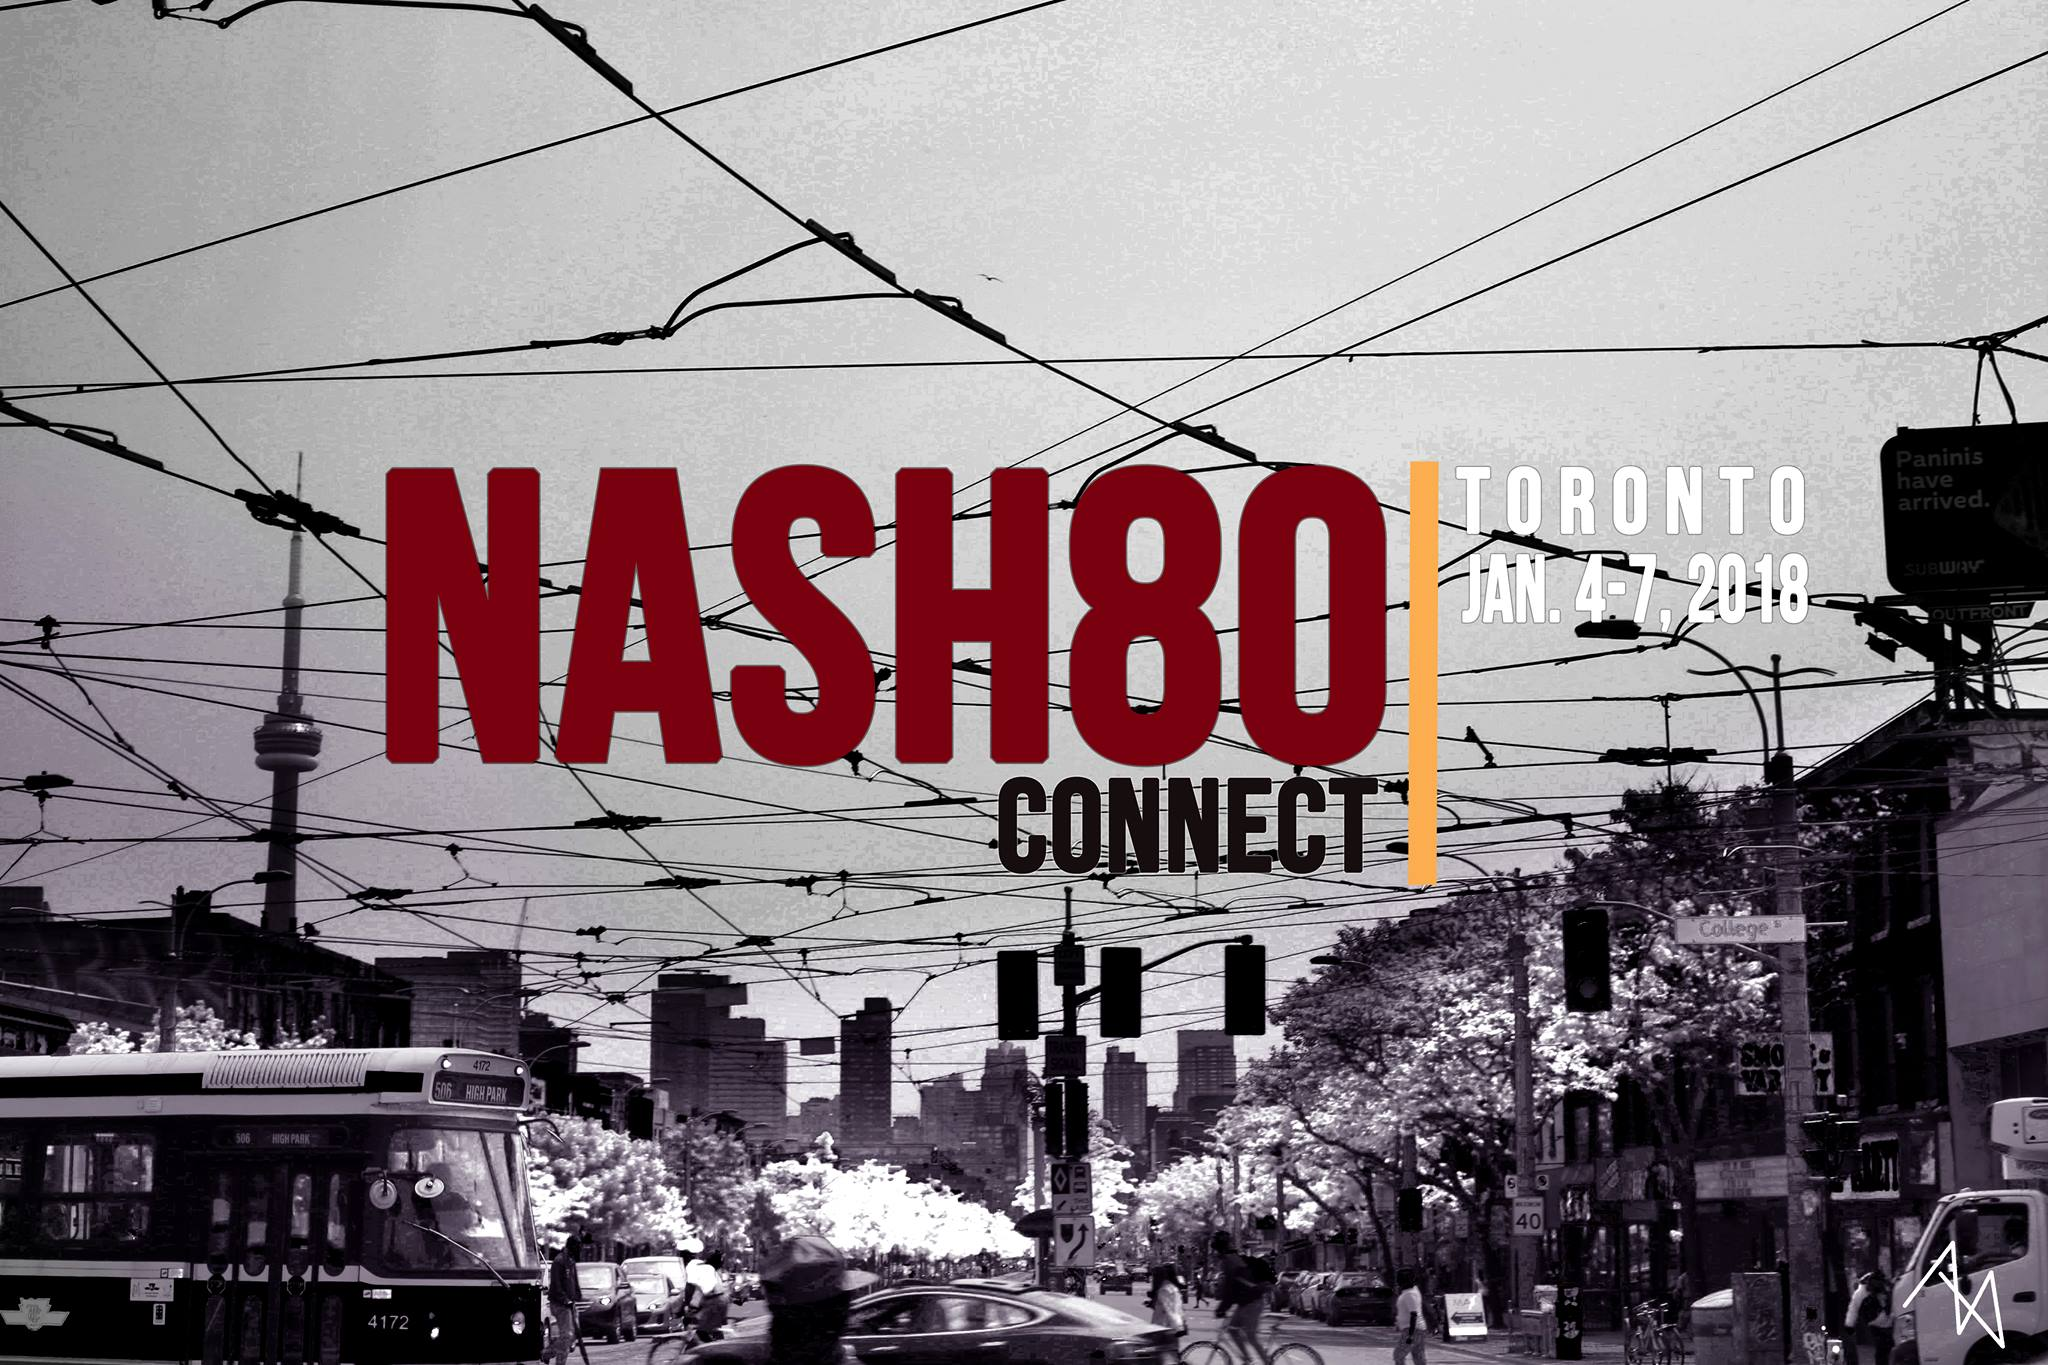 NASH80 is coming to Toronto this year and we needed a reason to party. Following our JHM awards gala, we will be taking over The Hideout on Jan. 6 with our new friends from across the country.  Bring your friends, your friends' friends and all your NASH buddies. Non-nashies will be charged $5 at the door but are welcome to come have a grand time with us too.  DIRECTIONS FROM THE CHELSEA HOTEL: Walk a block up to College street and take the streetcar westbound to Bathurst. You'll see the hideout across the street. That's it! Easy peasy.  This is an all-ages event and a cash bar. Email sierra@cup.ca with any questions!